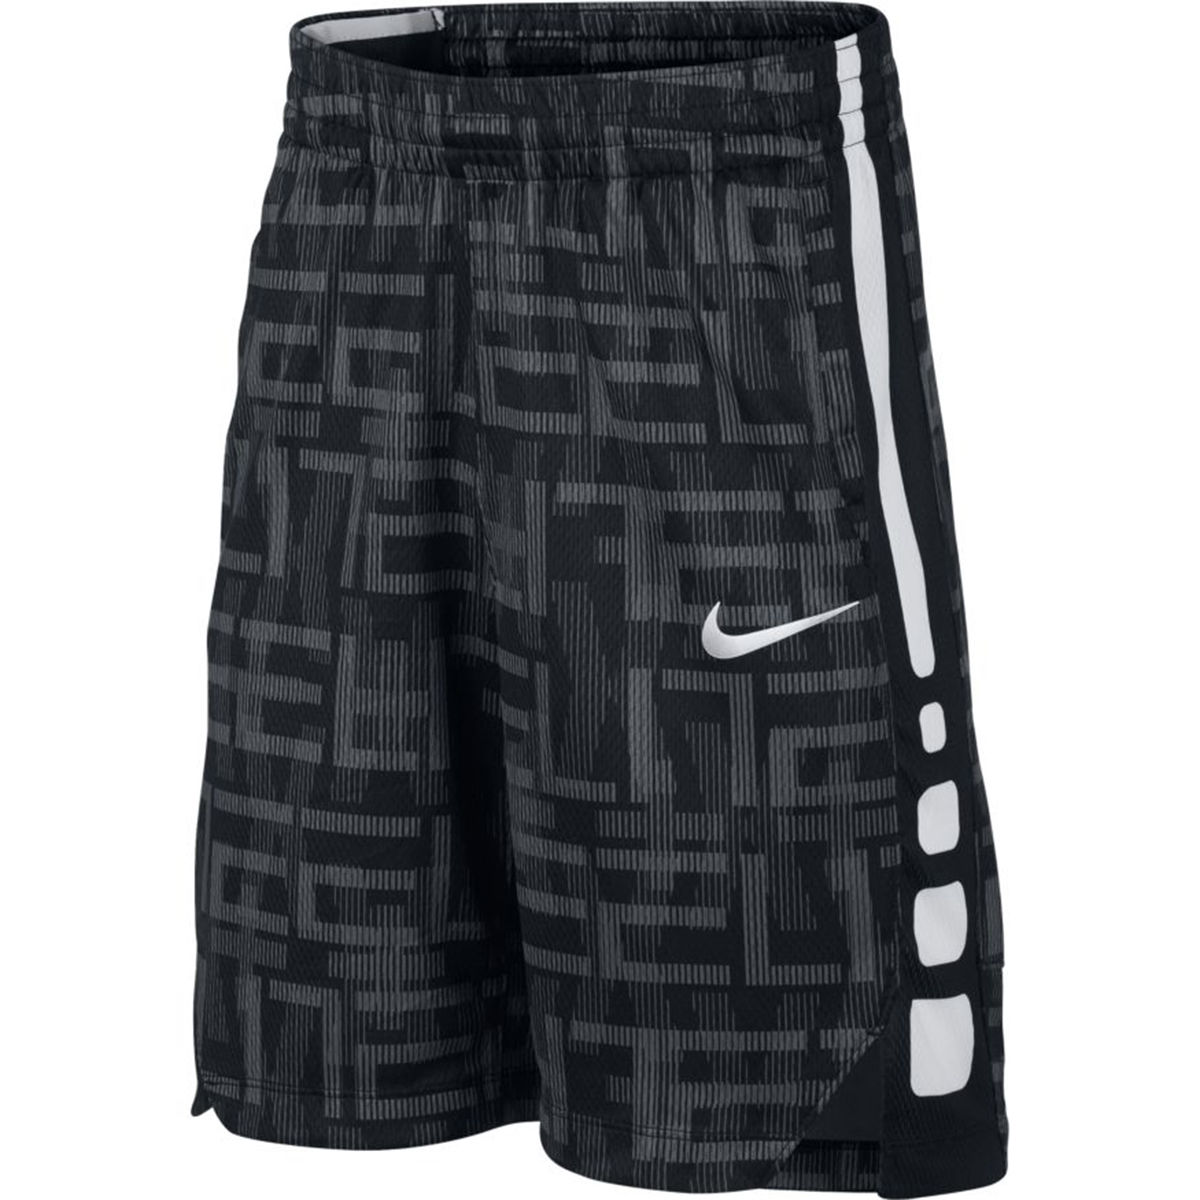 Nike Dry Elite Boys Basketball Short